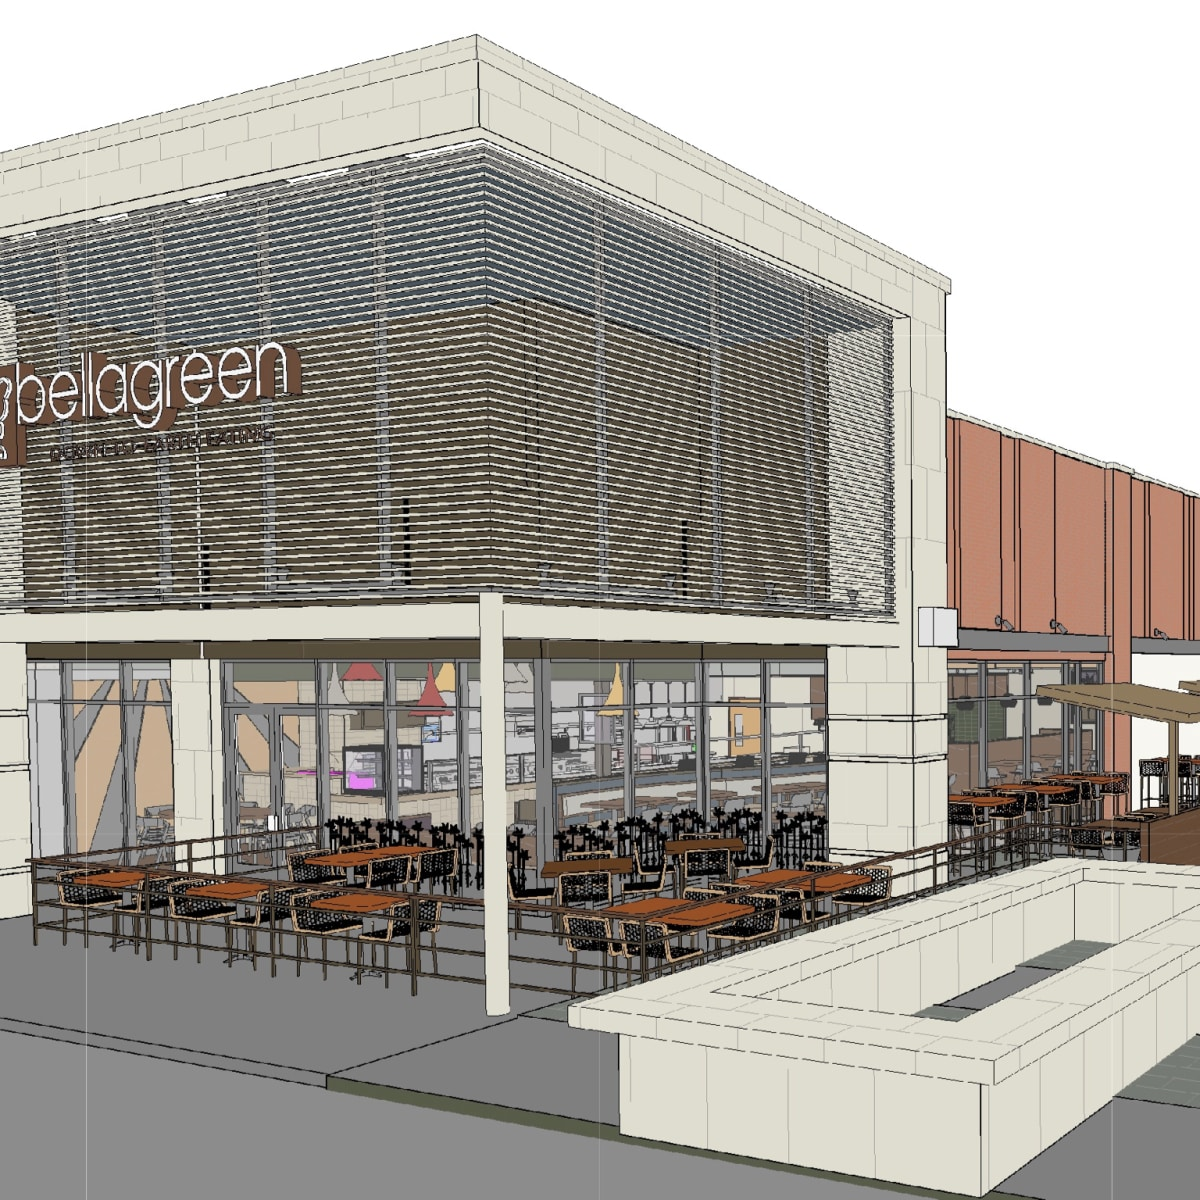 Bellagreen Vintage Market rendering